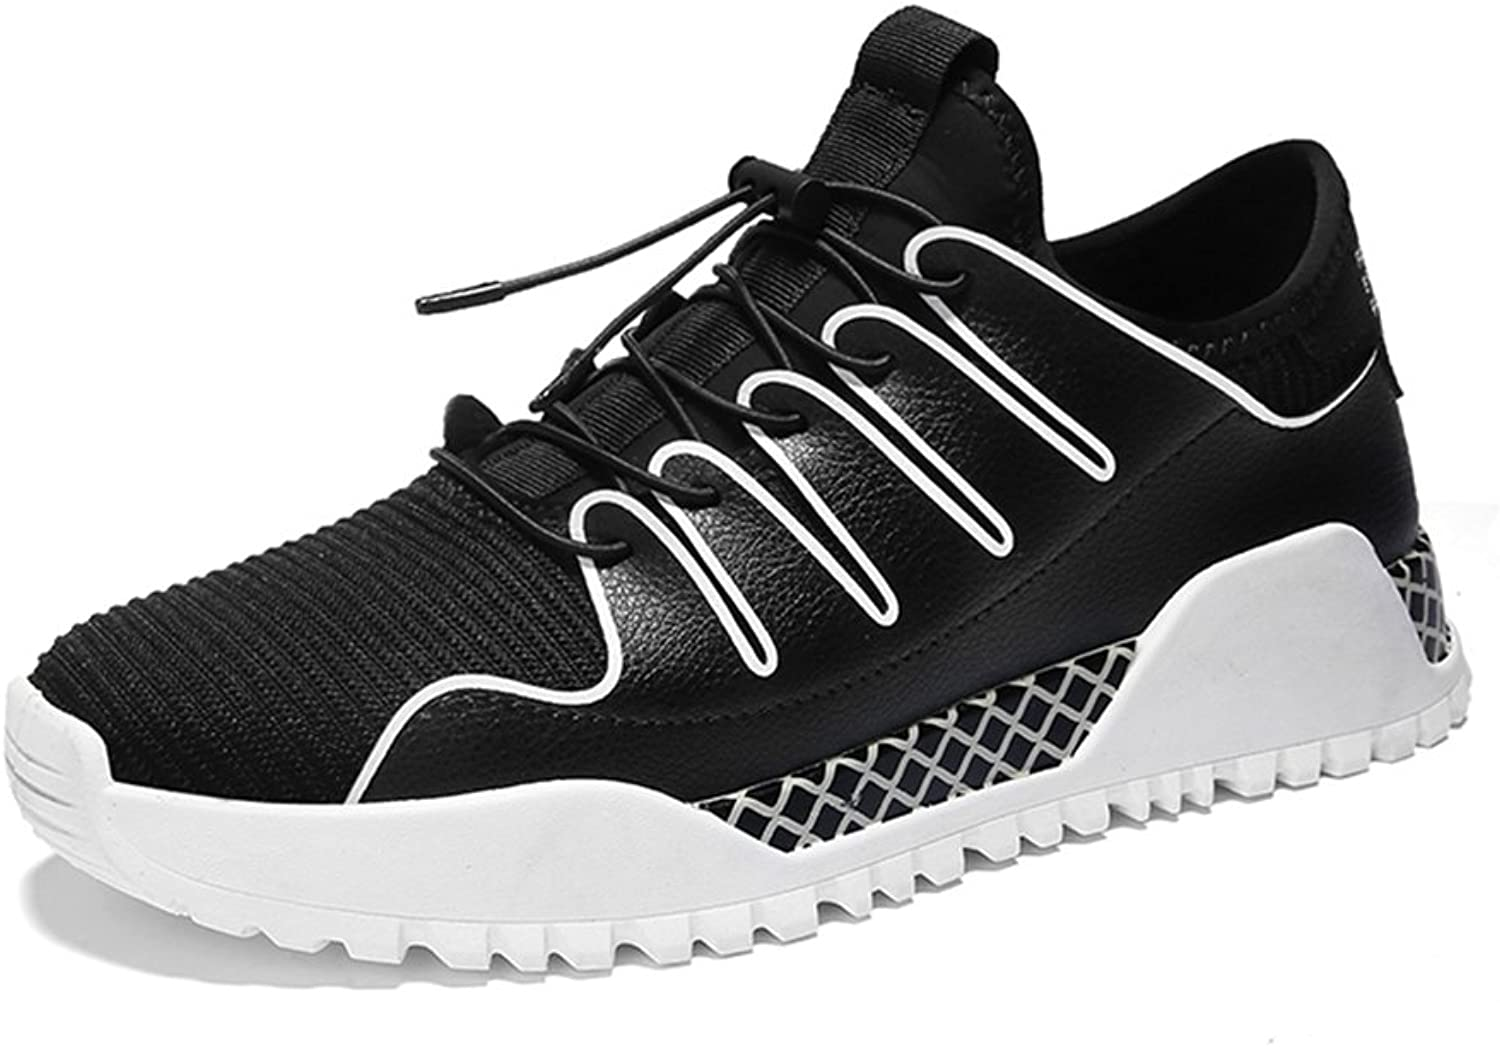 GLSHI Men's shoes Spring Fall Comfort Athletic shoes Tennis shoes Lace-up For Athletic Casual Black Red Black White